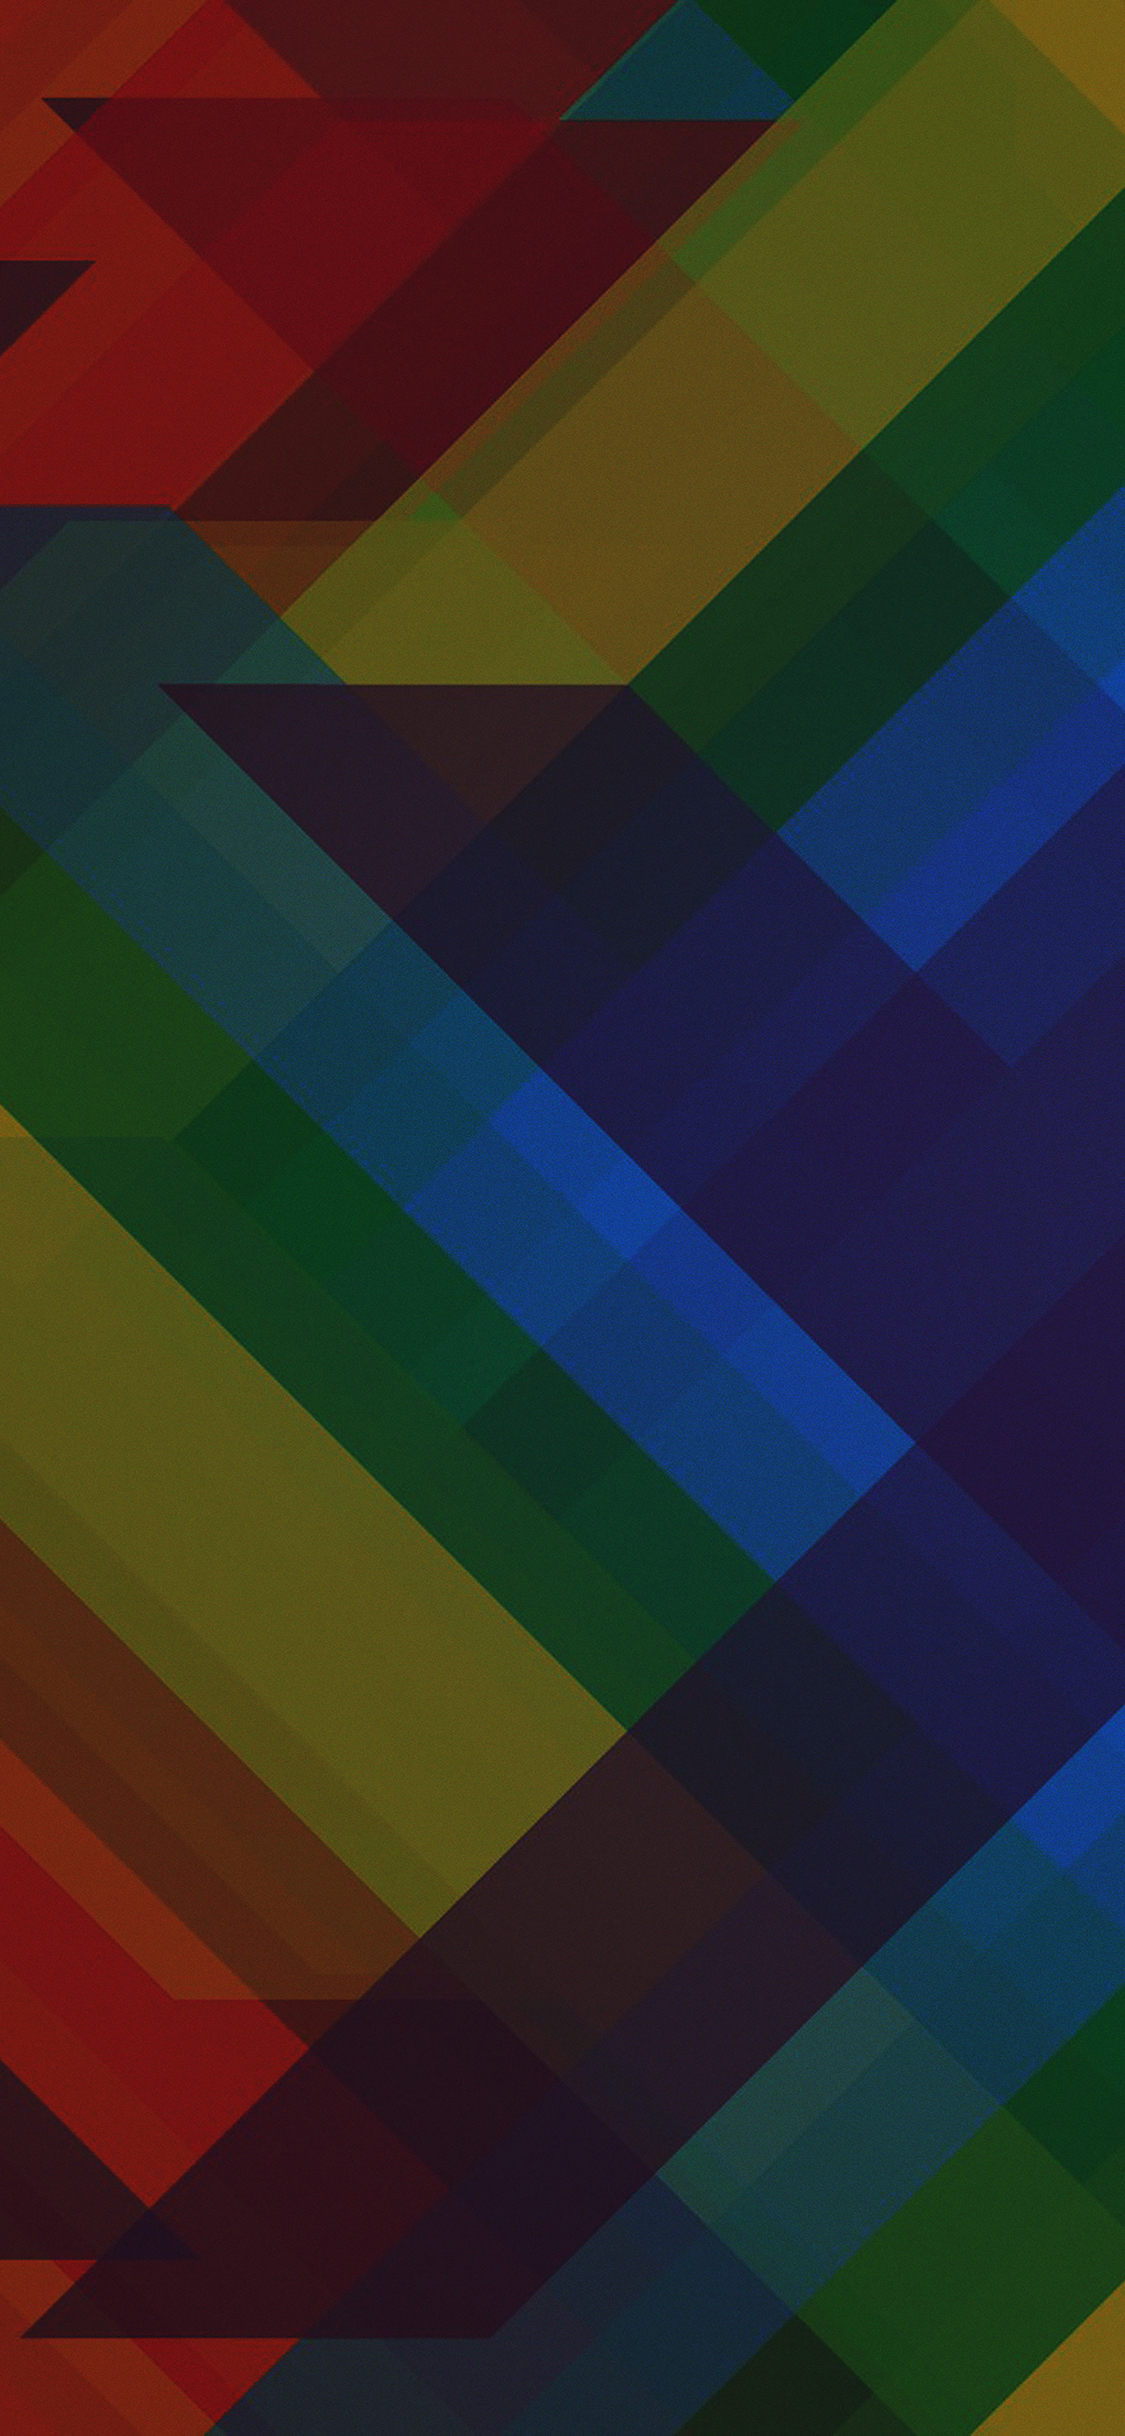 iPhoneXpapers.com-Apple-iPhone-wallpaper-vd38-multicolored-polygons-dark-pattern-art-abstract